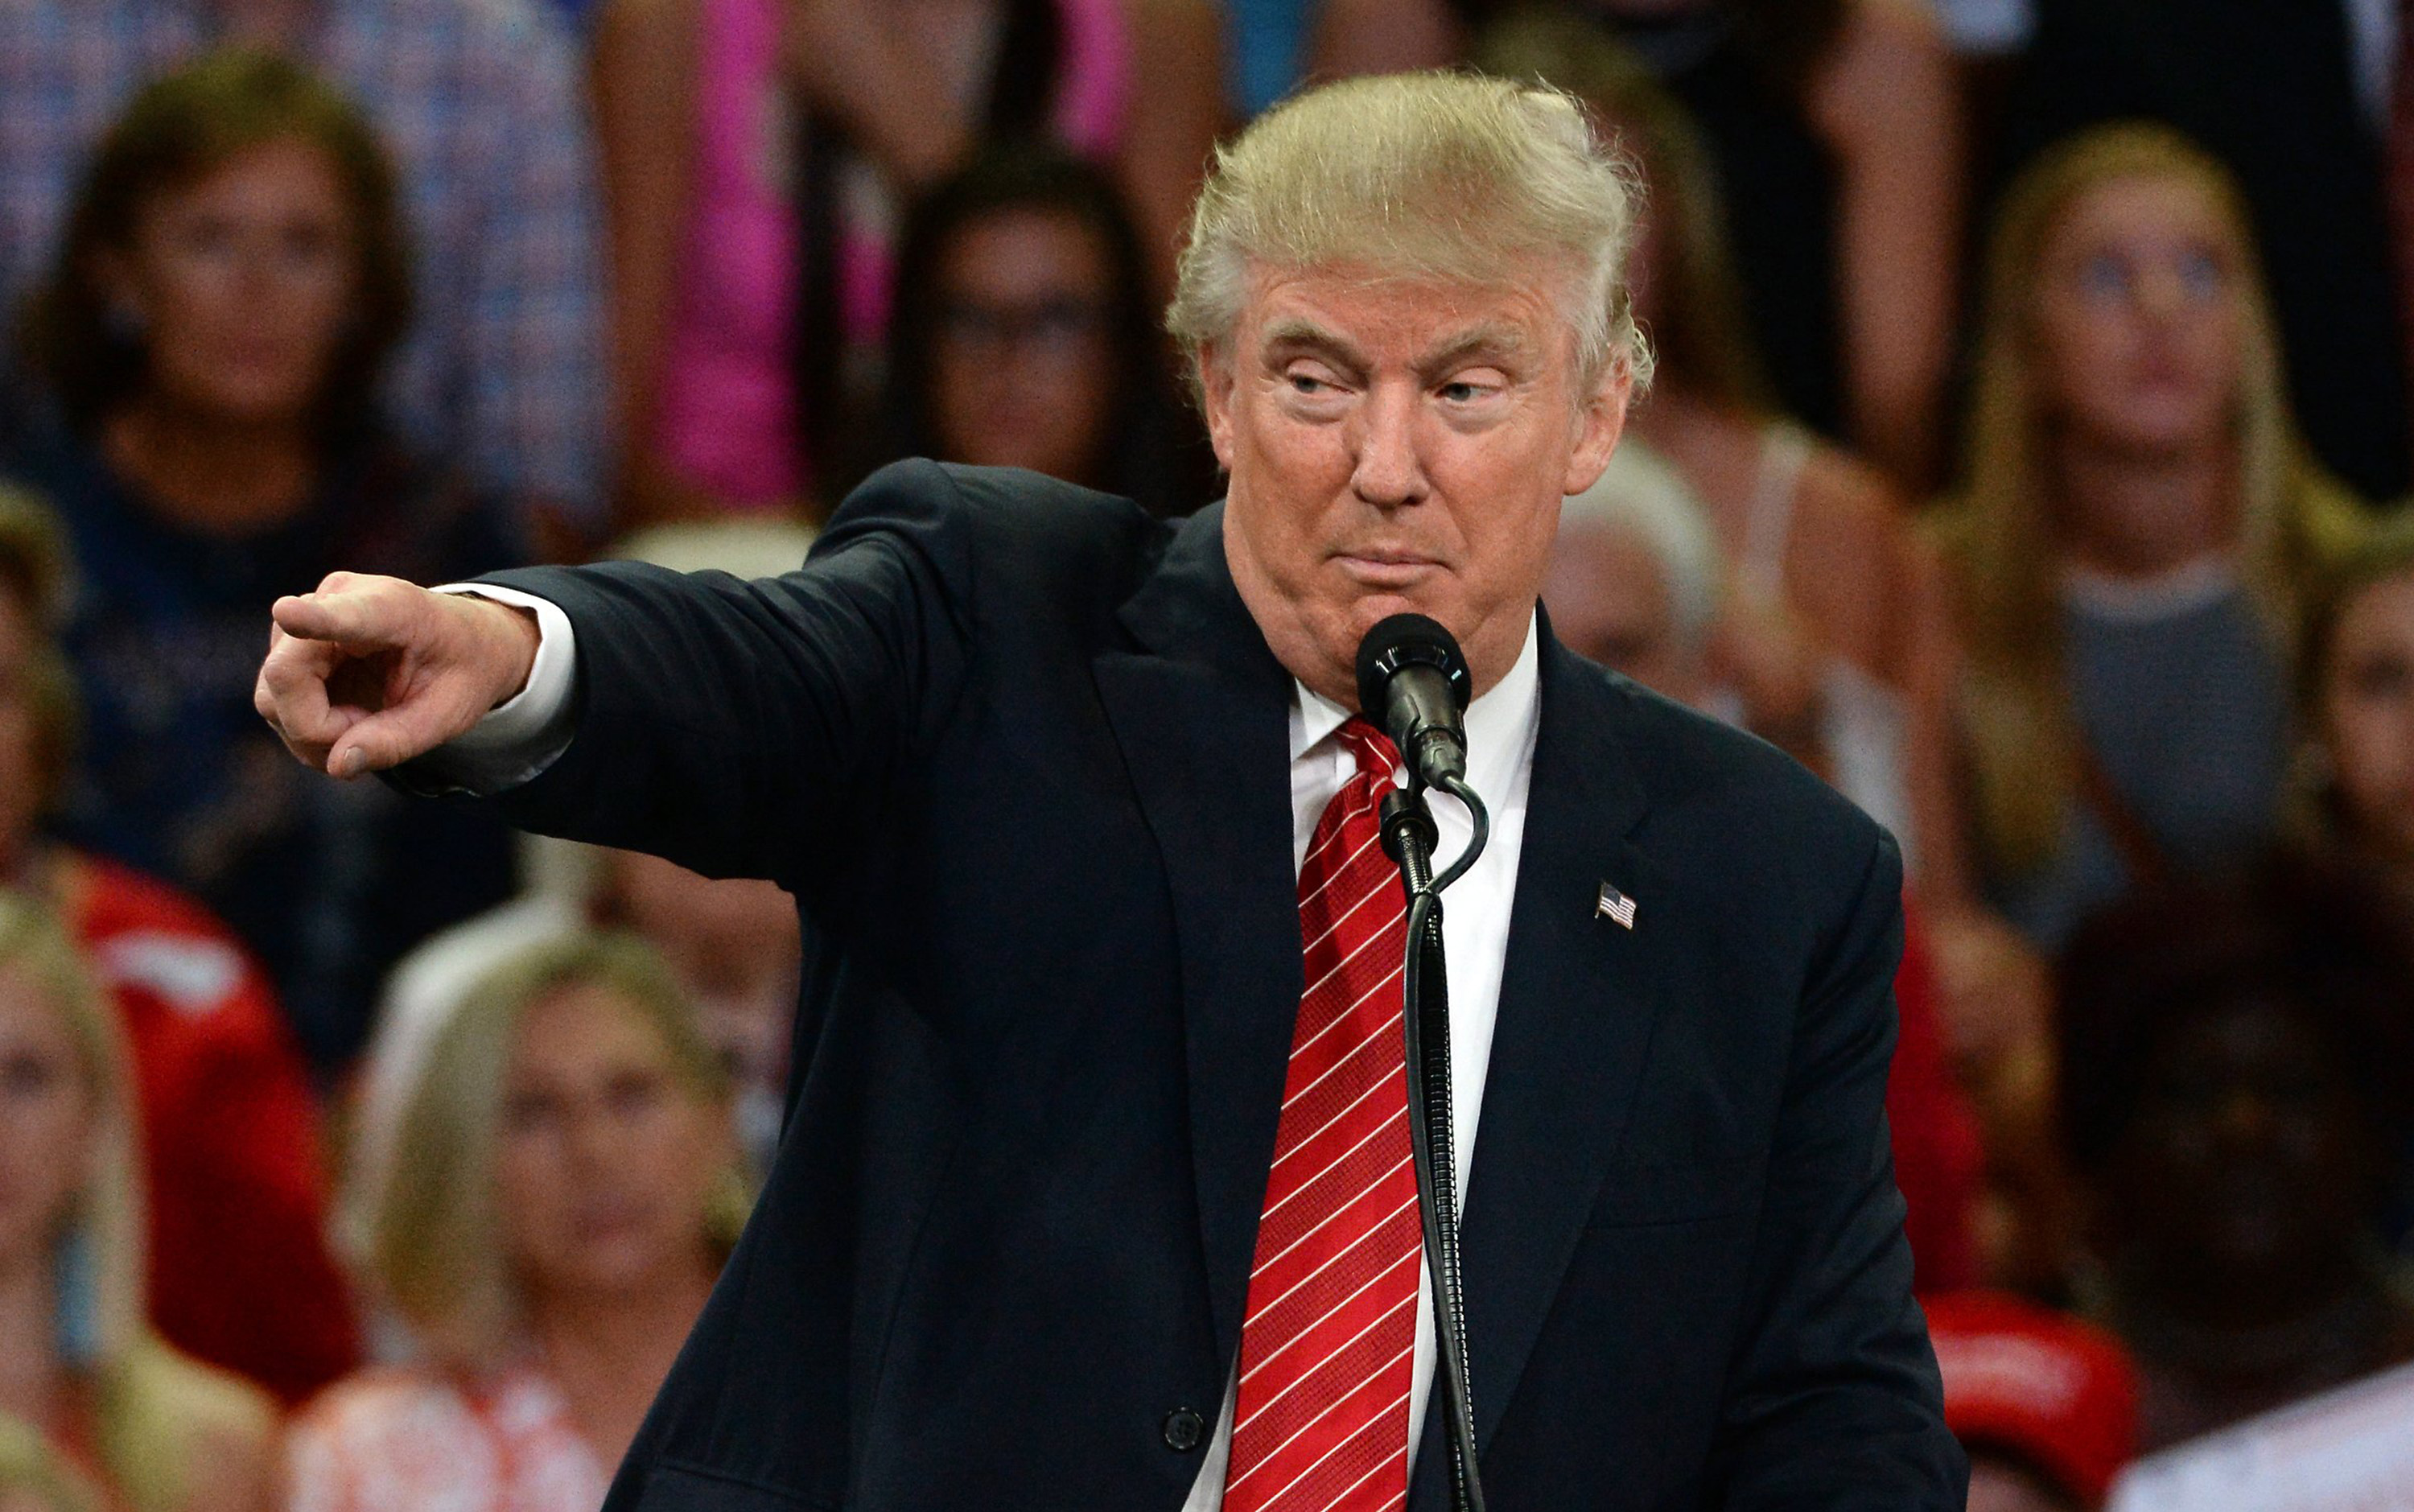 Republican presidential candidate Donald Trump points to a member of the audience as he makes remarks Aug. 9, 2016 in Wilmington, N.C.